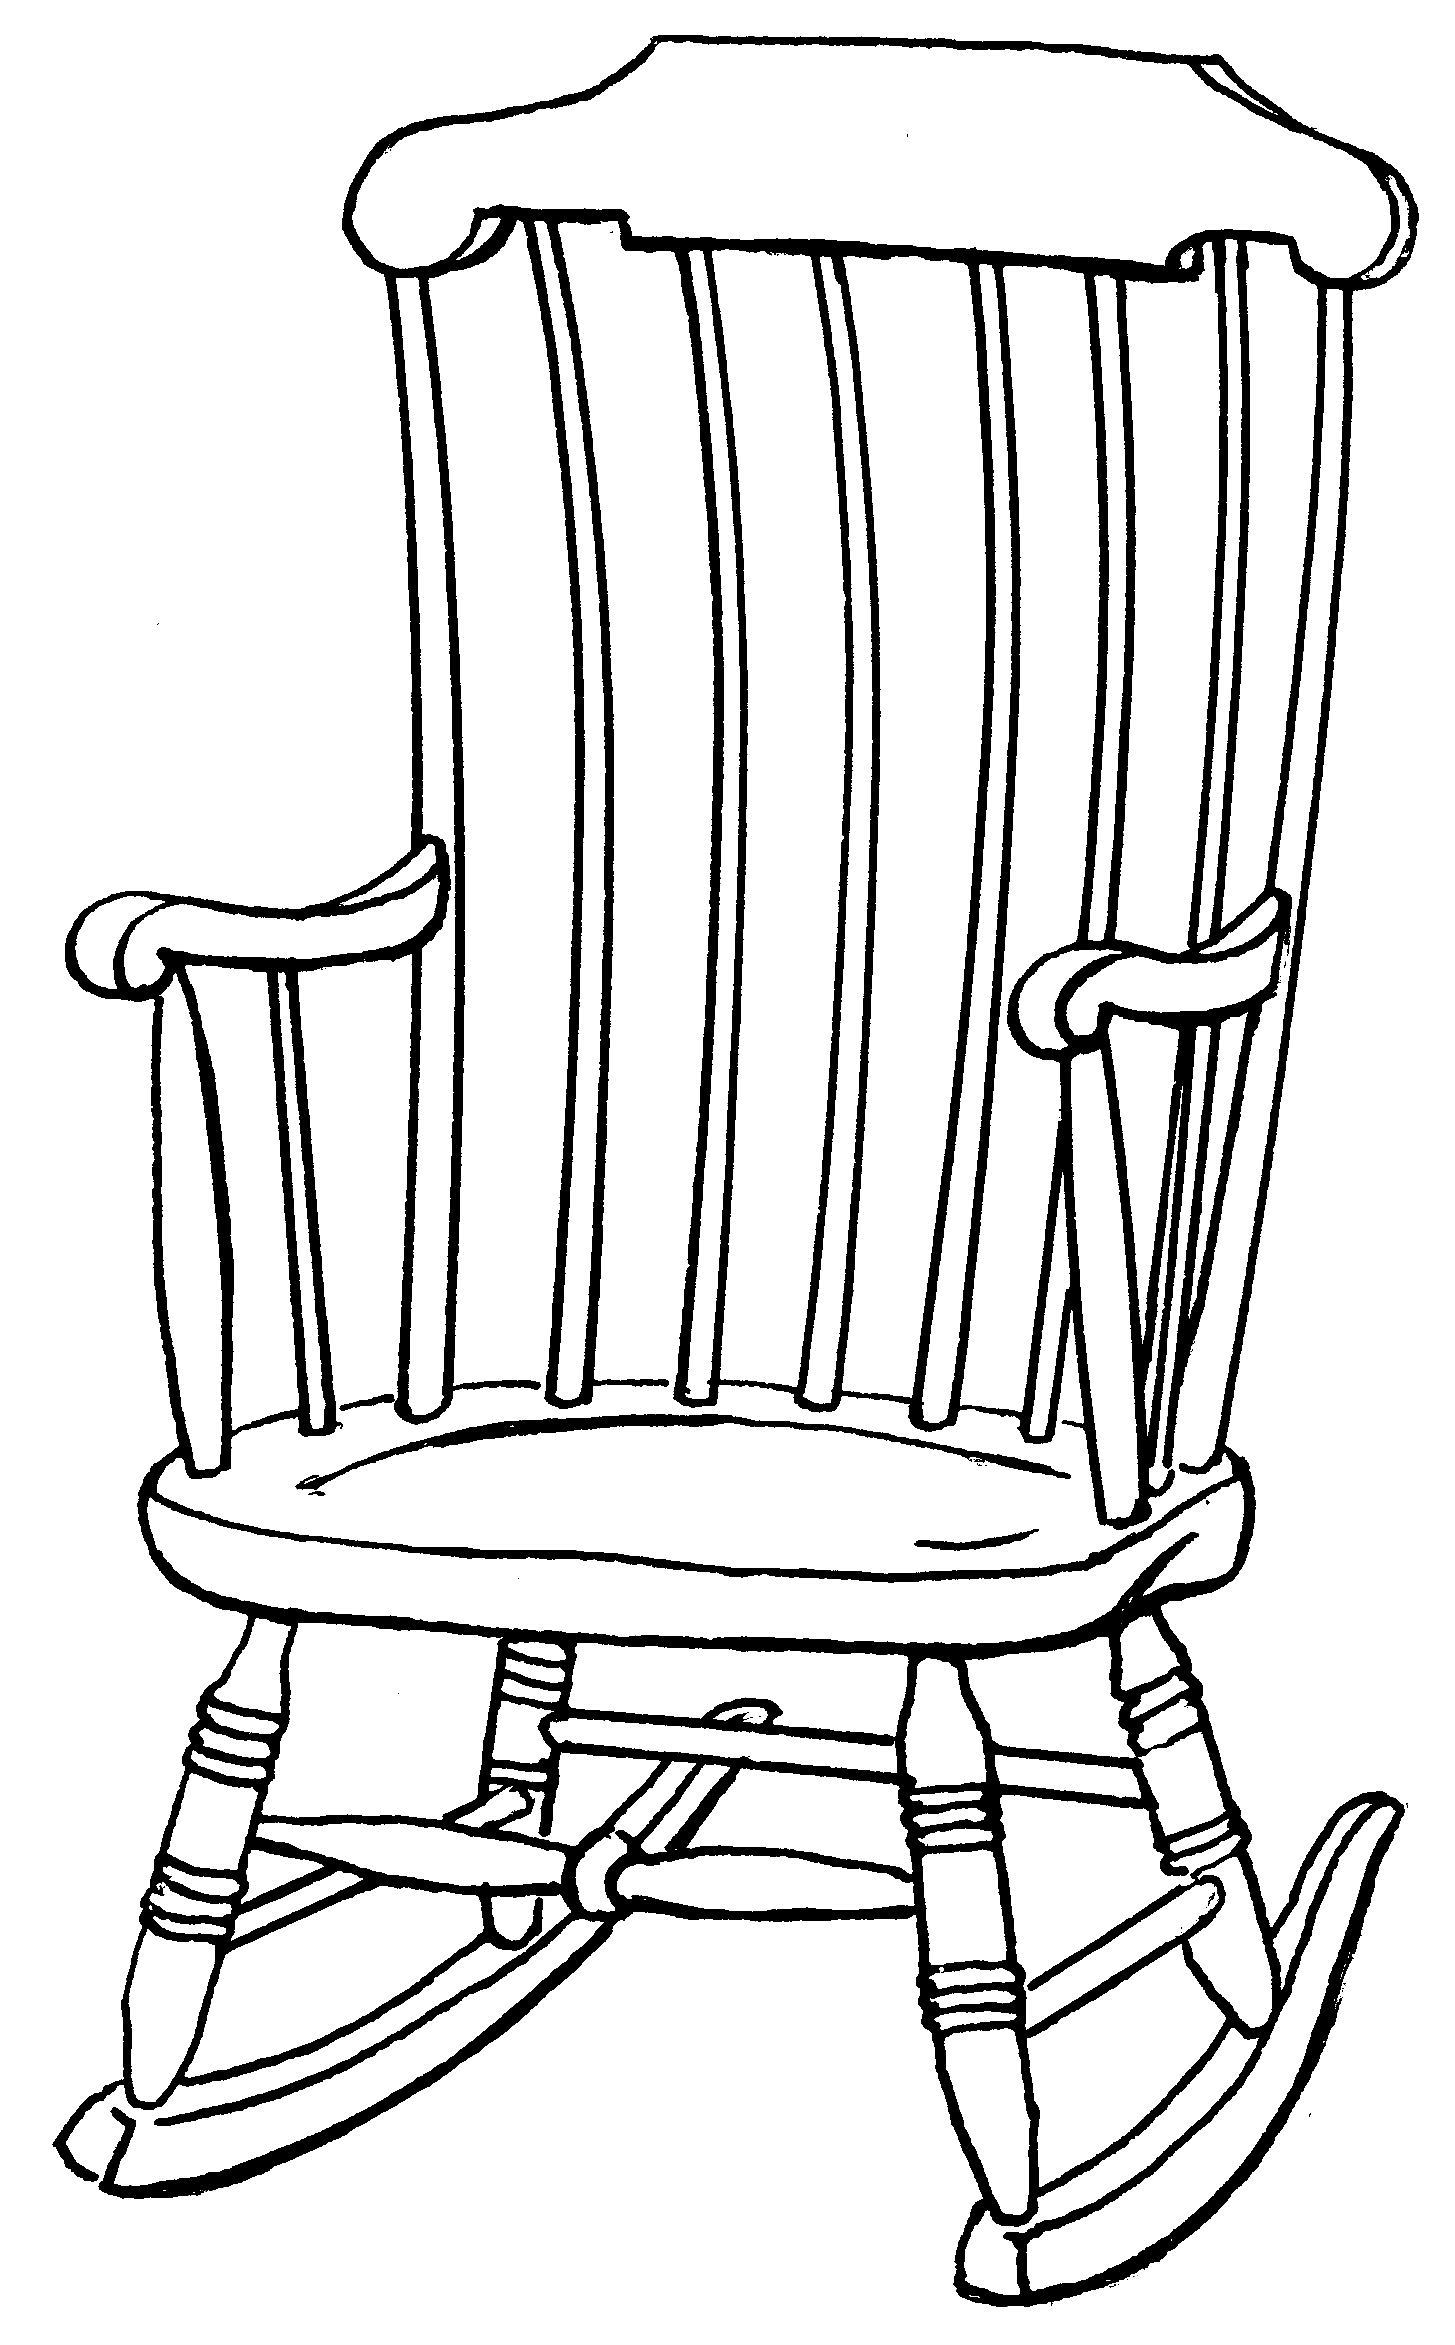 Outline Drawings On Chair